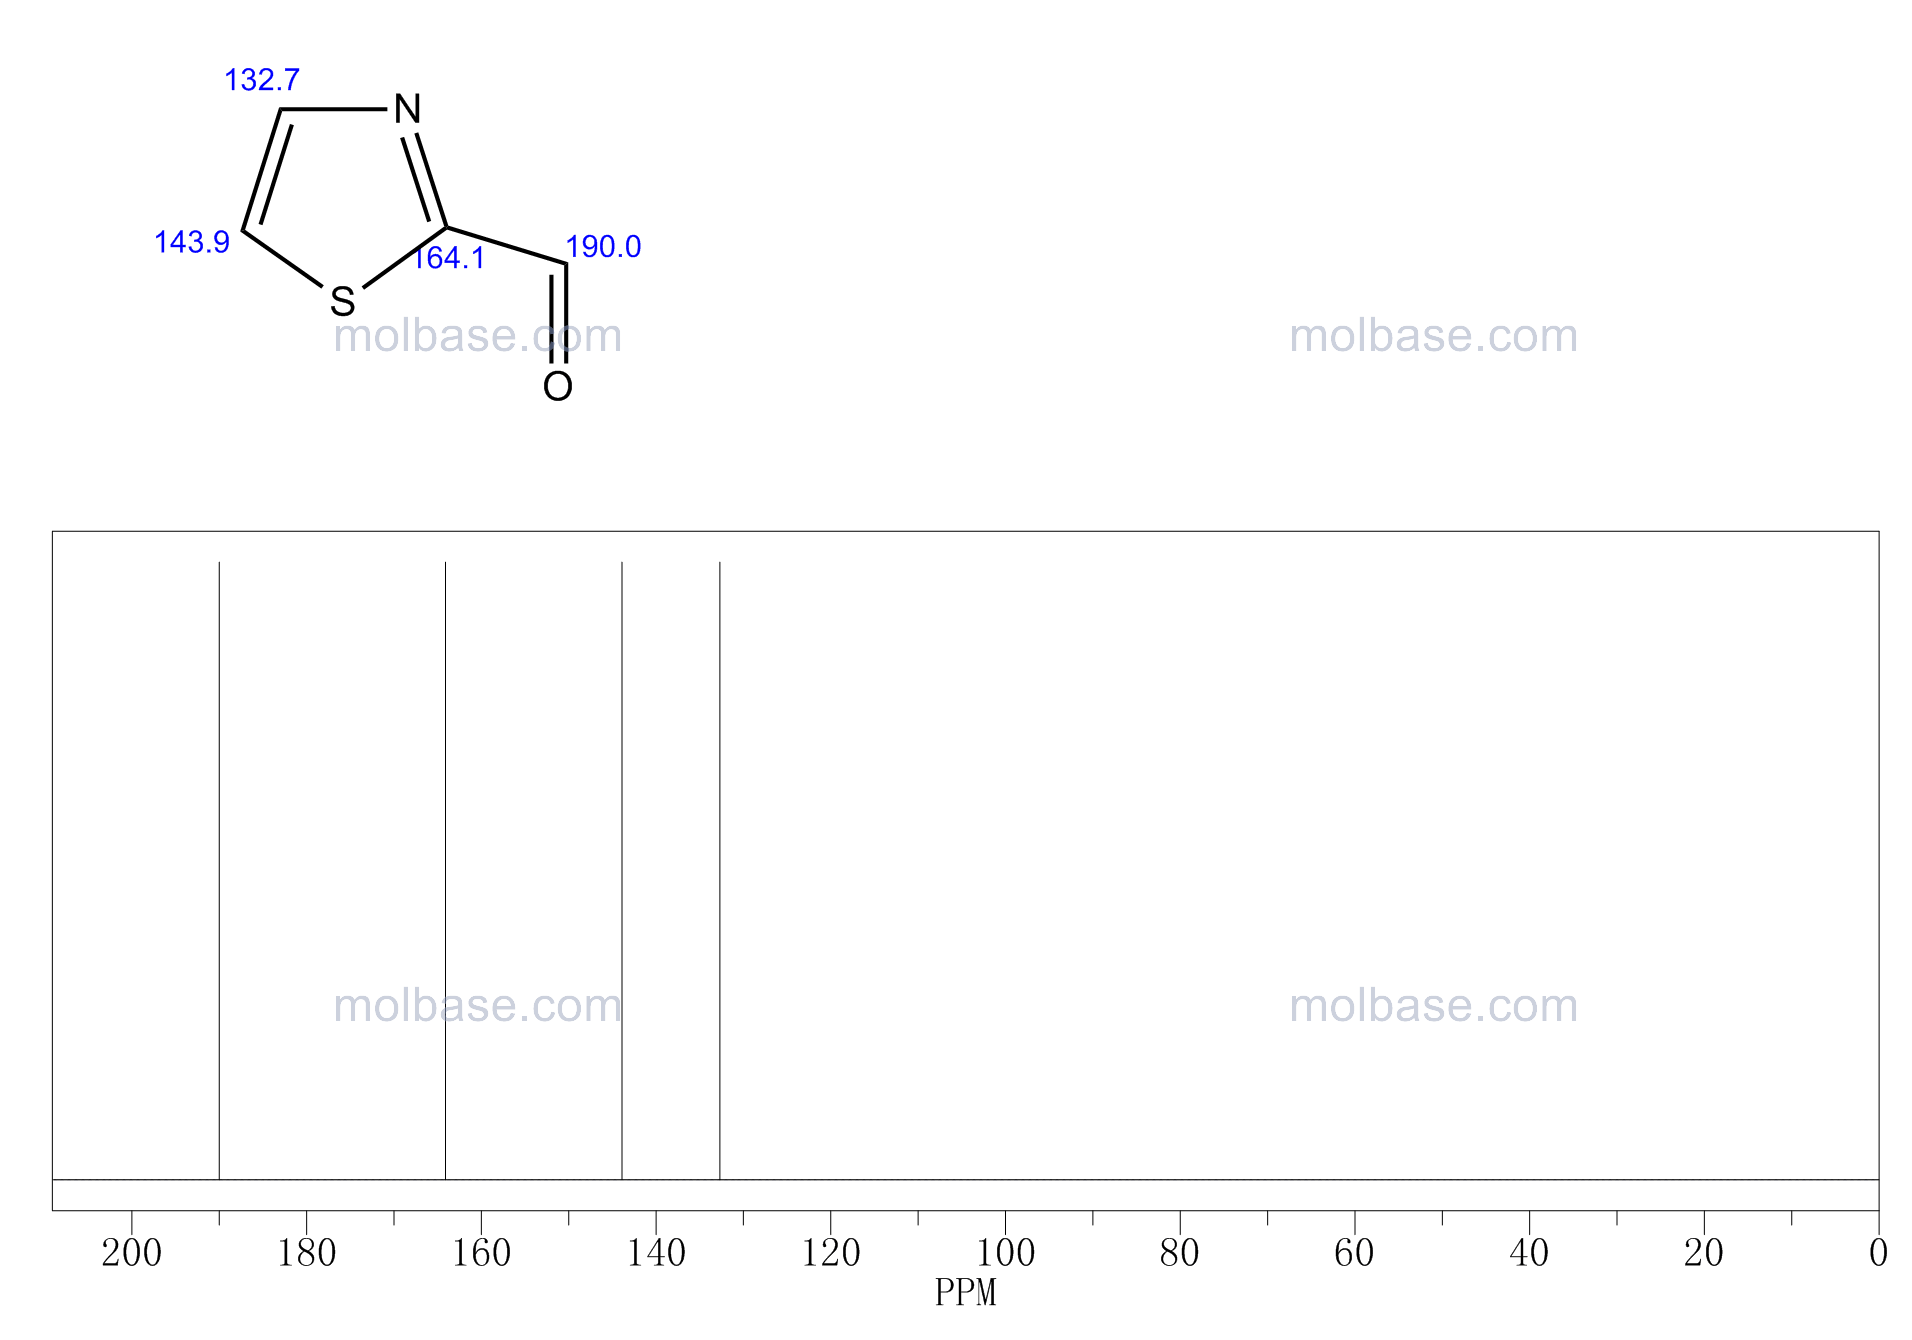 2-Thiazolecarboxaldehyde NMR spectra analysis, Chemical CAS NO. 10200-59-6 NMR spectral analysis, 2-Thiazolecarboxaldehyde C-NMR spectrum